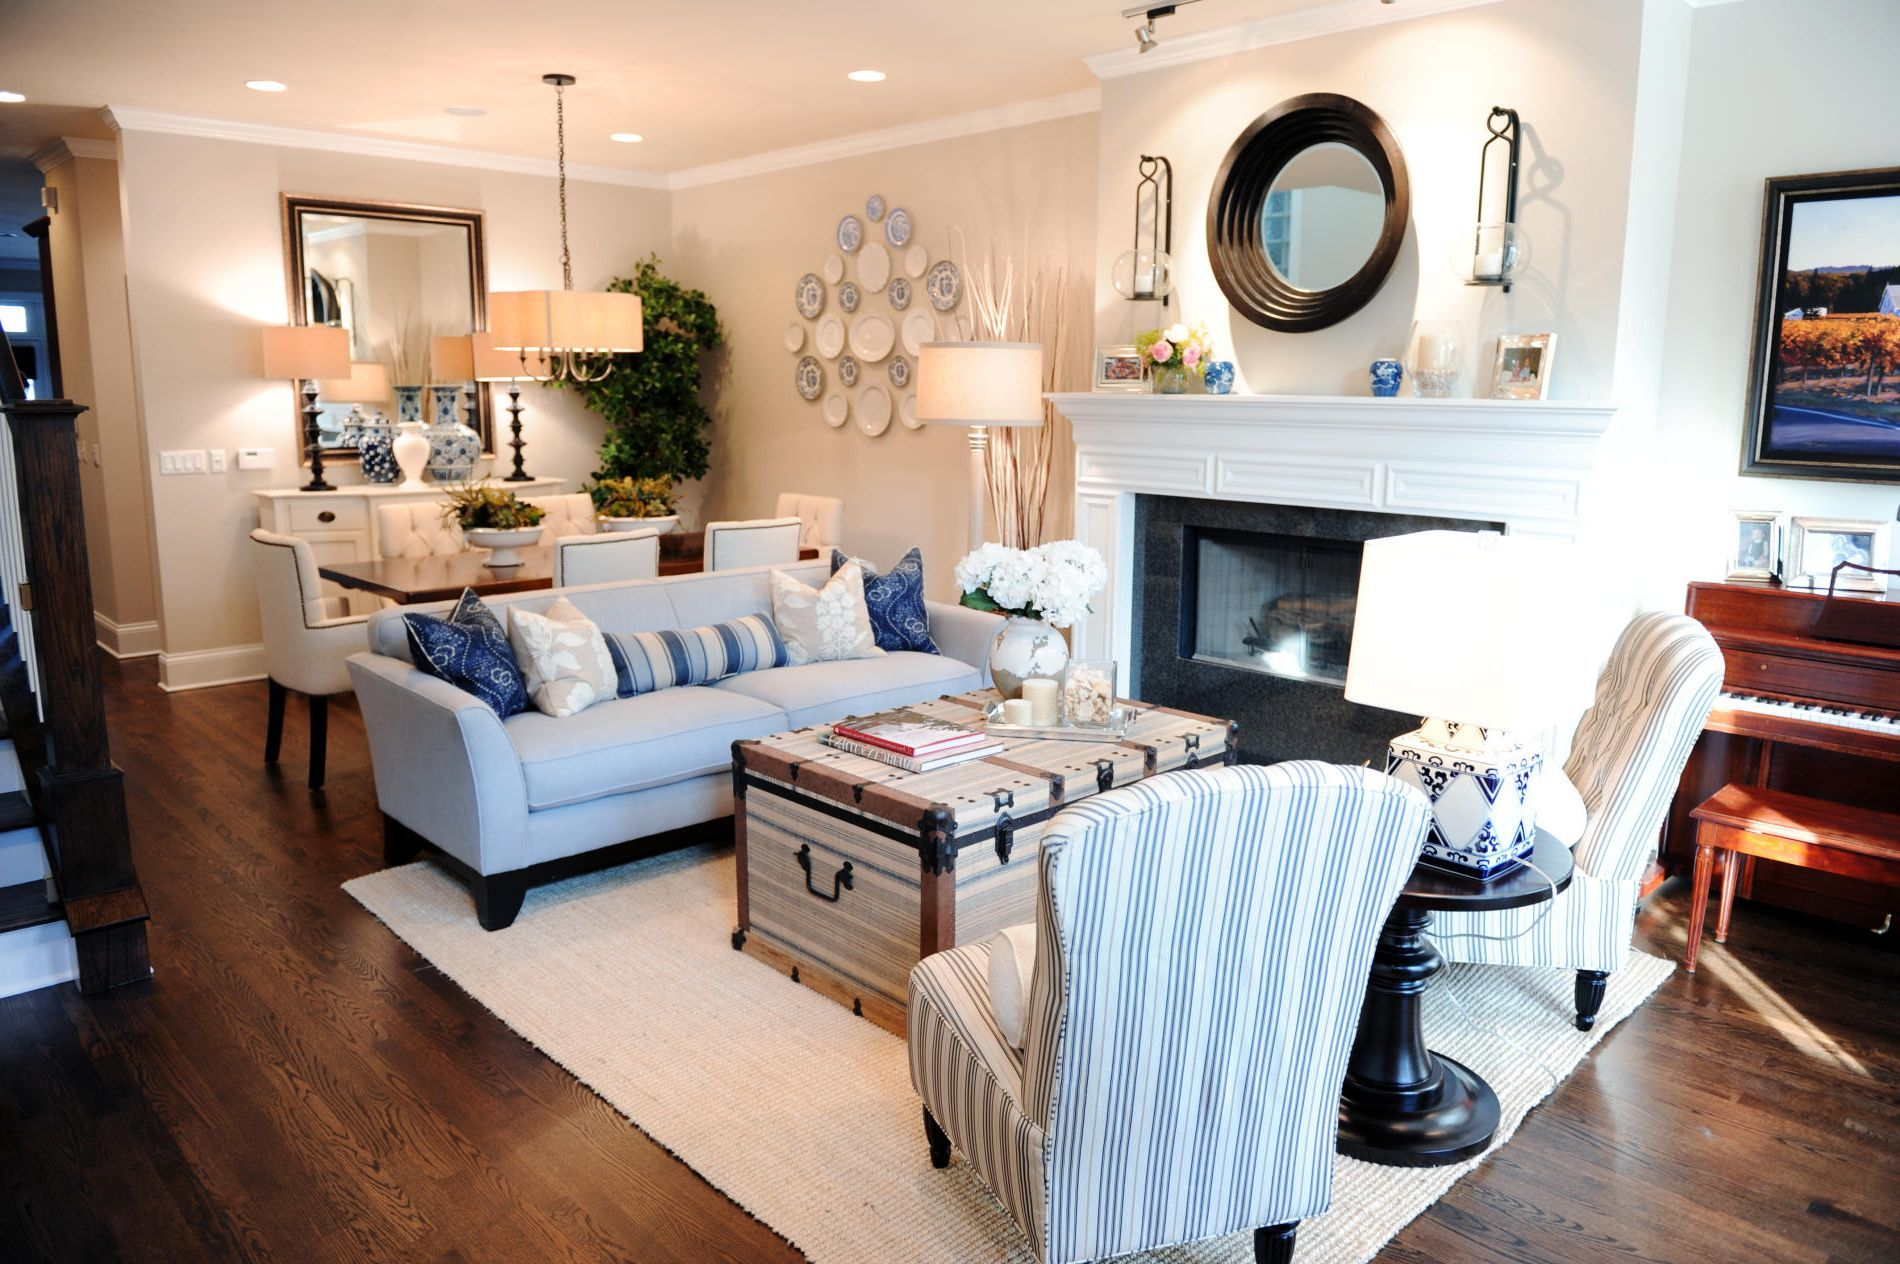 Dining room arrangements arrangement rectangle living room dining room combo rectangle living room ideas blue white stripped swing back chair white fire